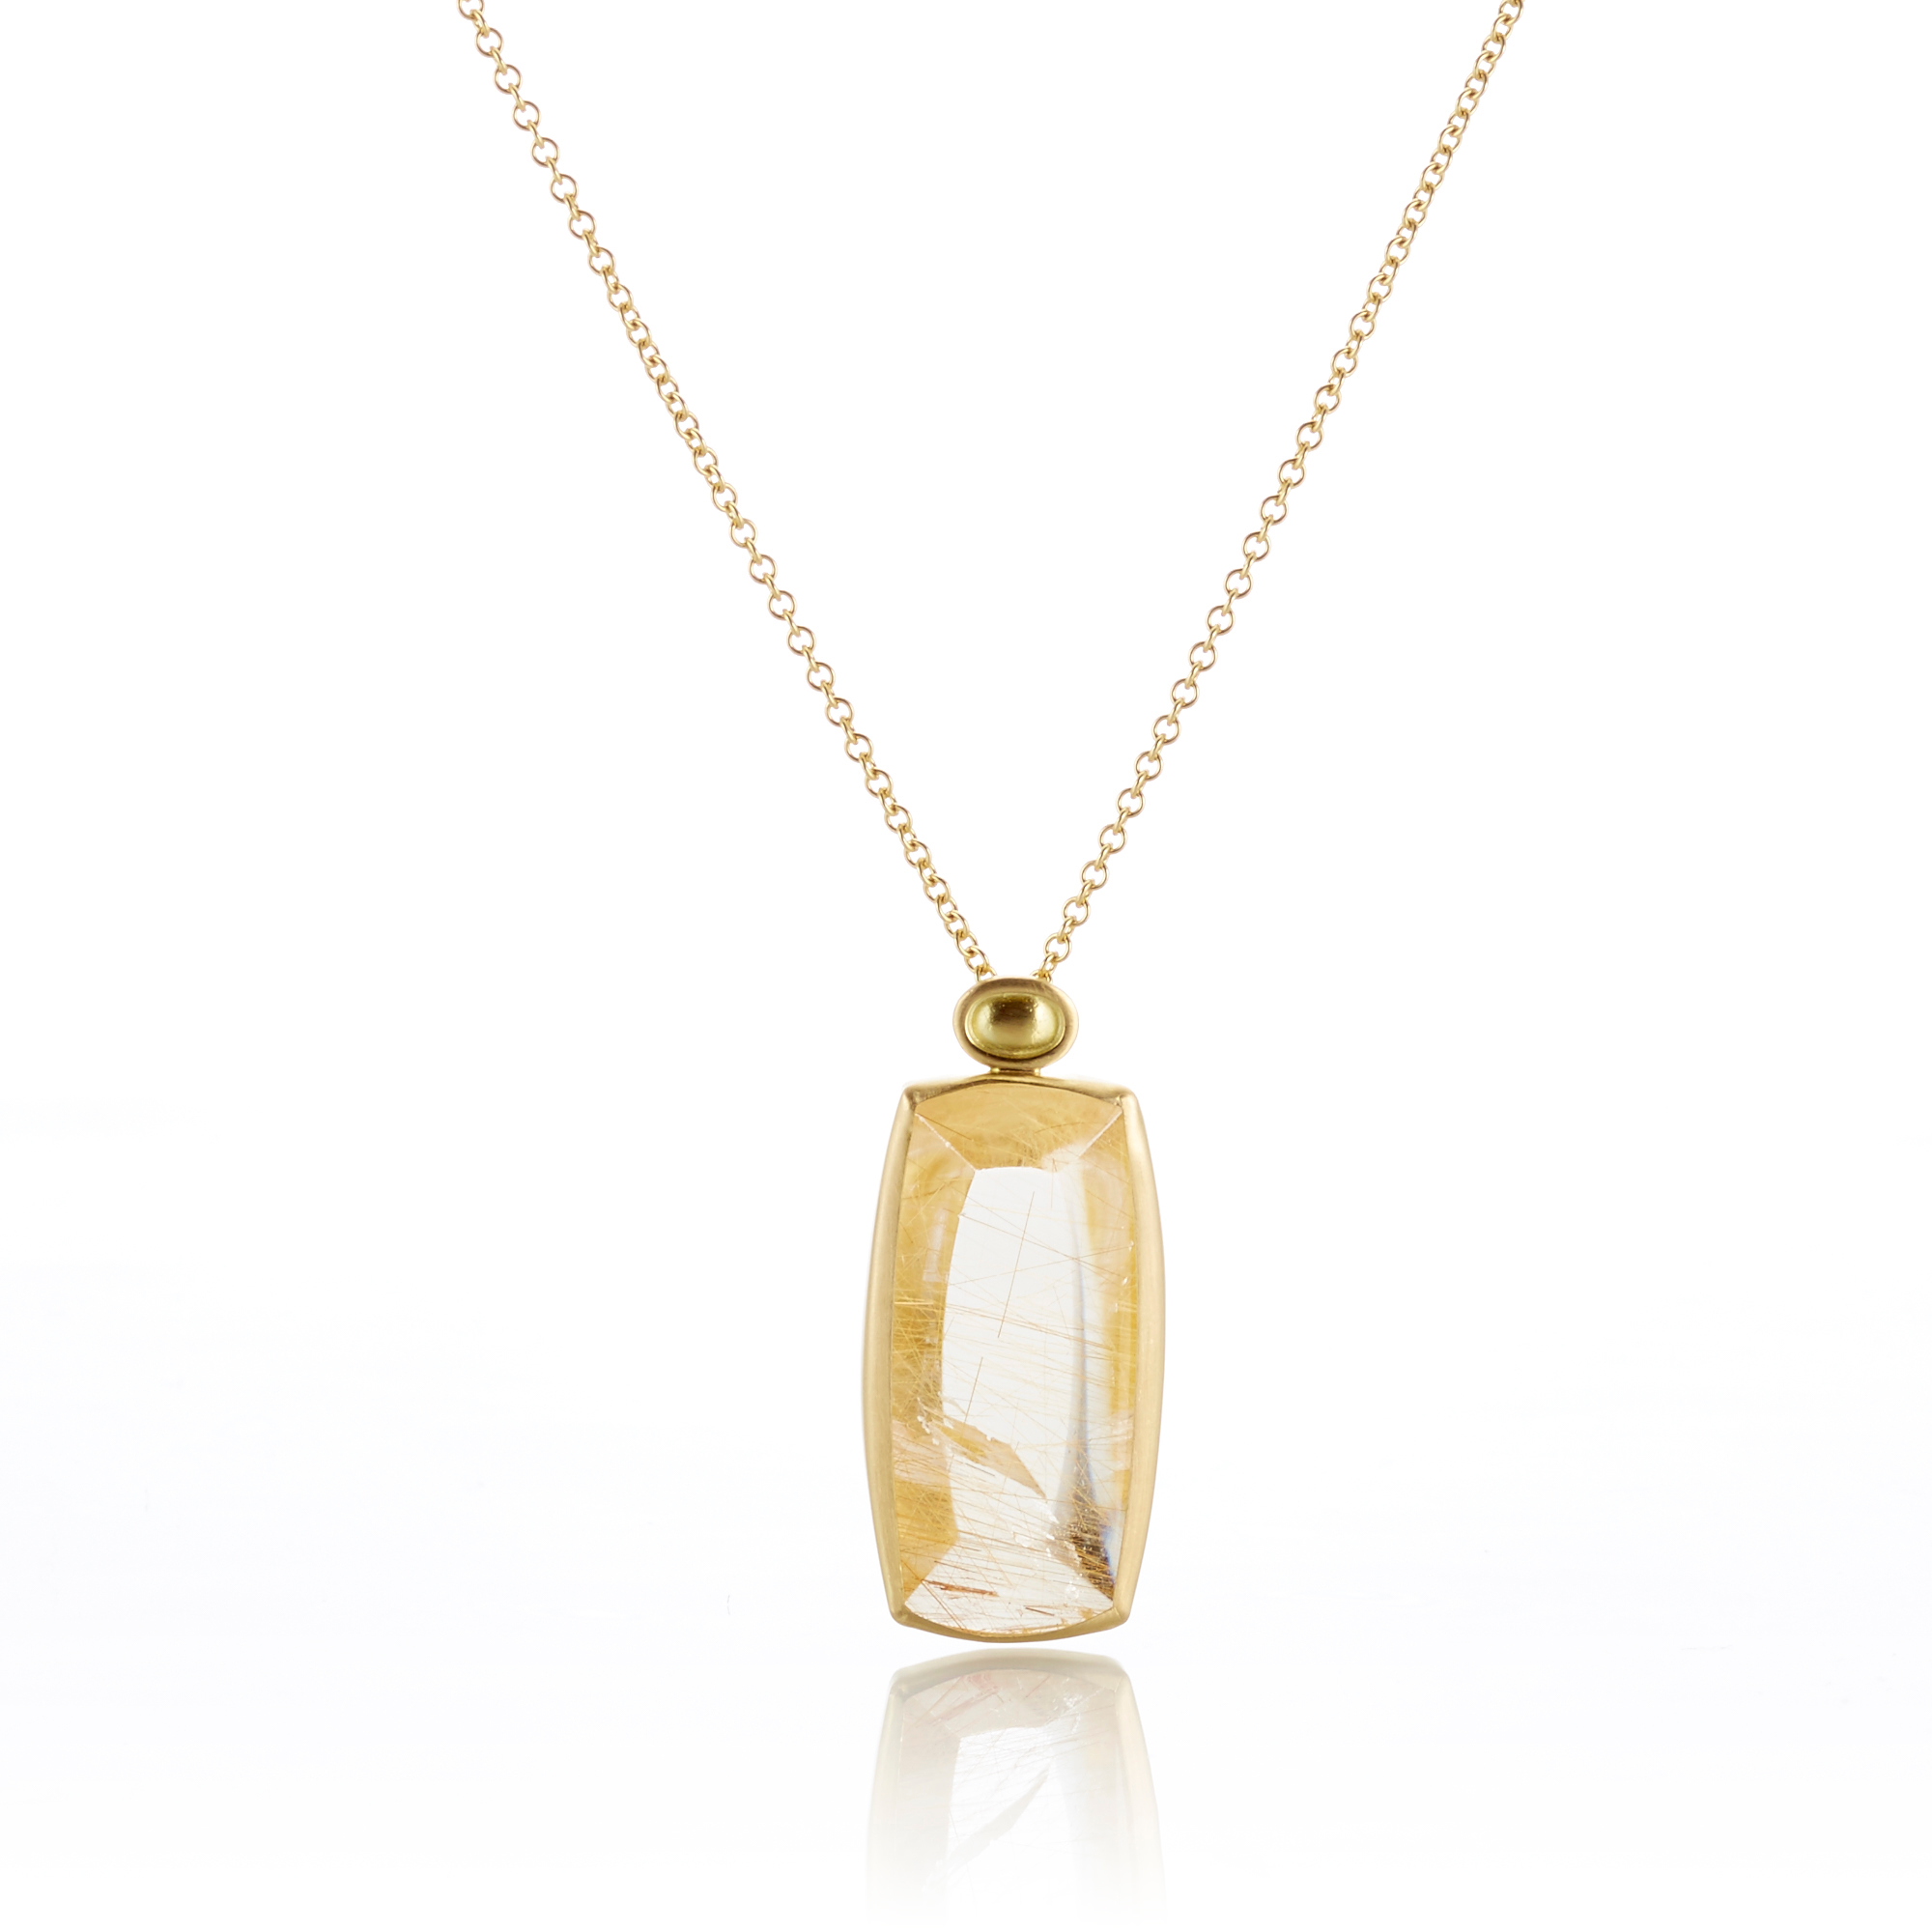 Monica Marcella Rutilated Quartz Shield Pendant Necklace